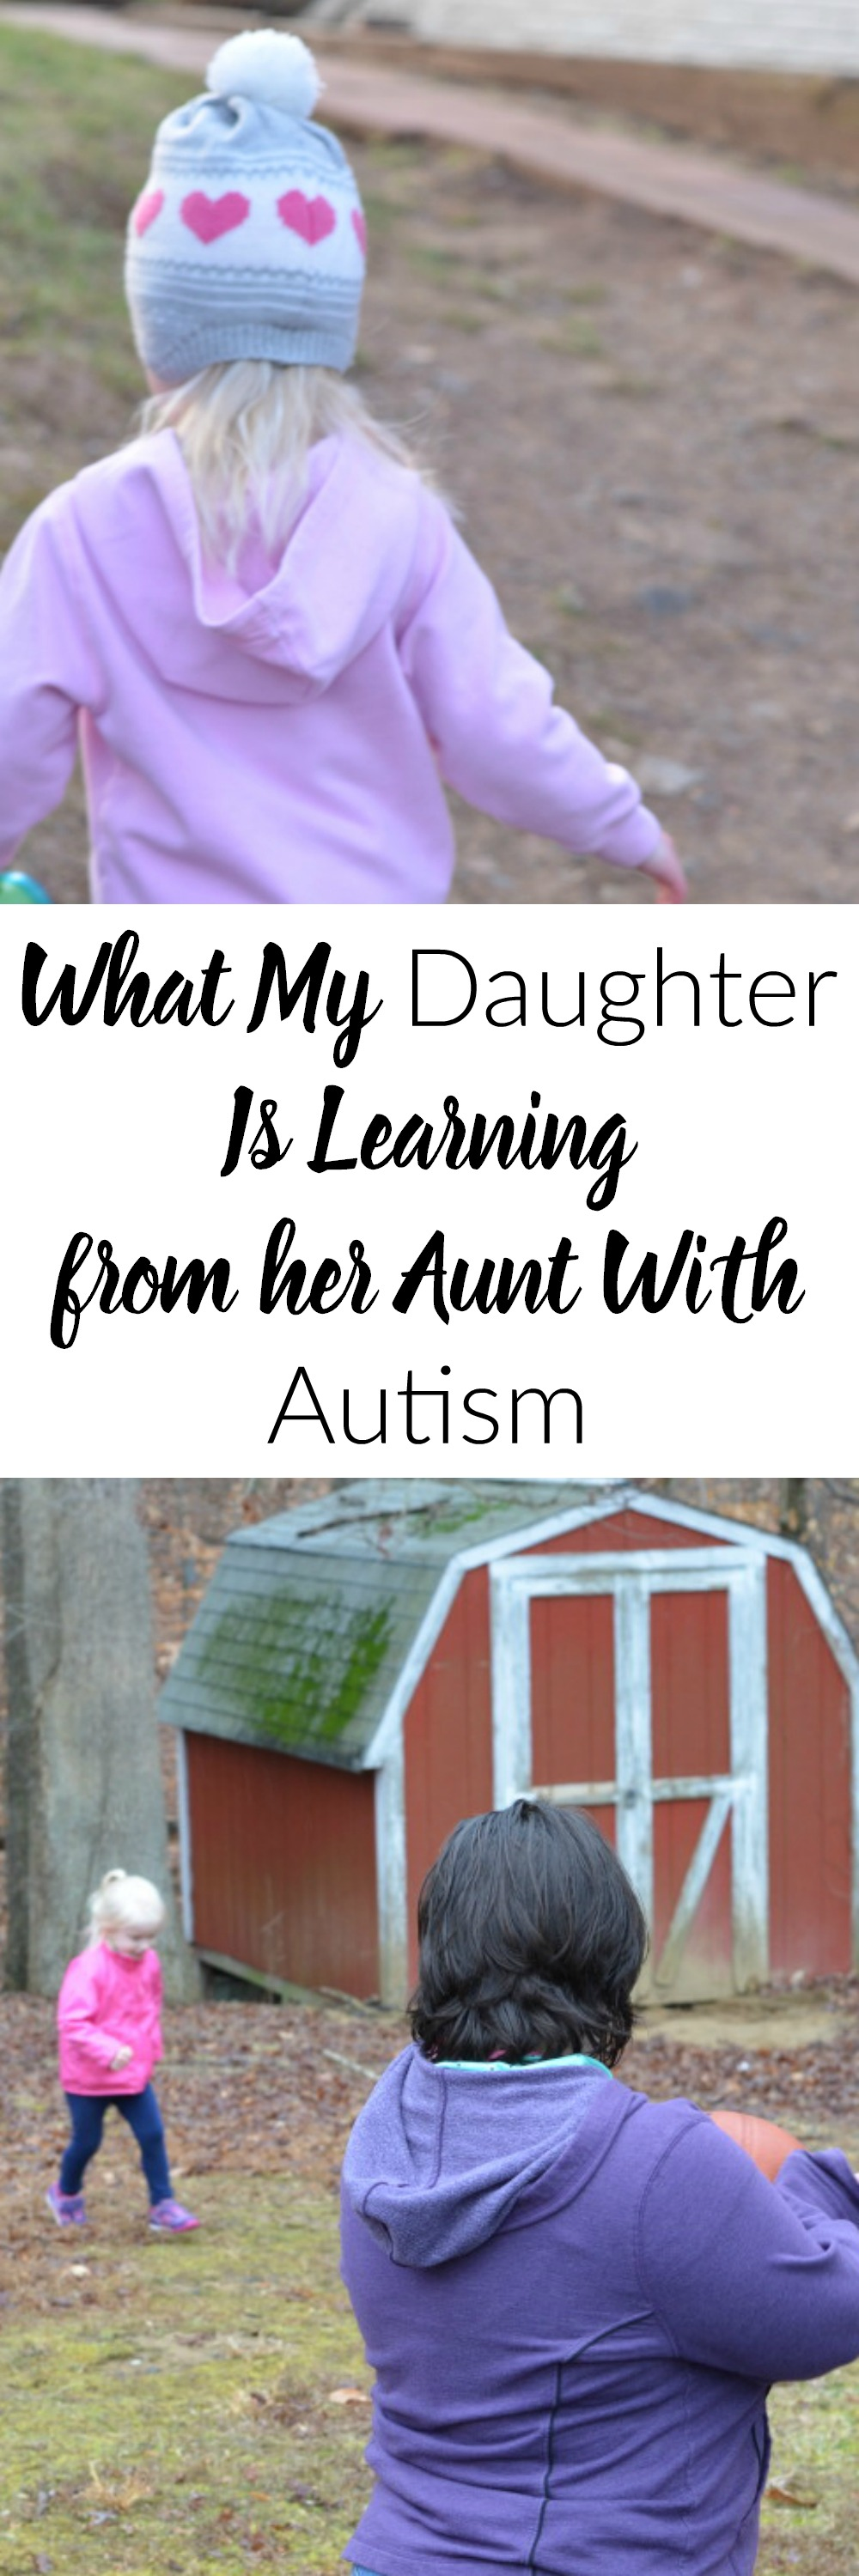 What My Daughter is Learning From Her Aunt with Autism- This post is wonderful! What a great reminder for everyon that we can learn from each other no matter our differences. What an encouraging post for families who have loved ones with Autism.